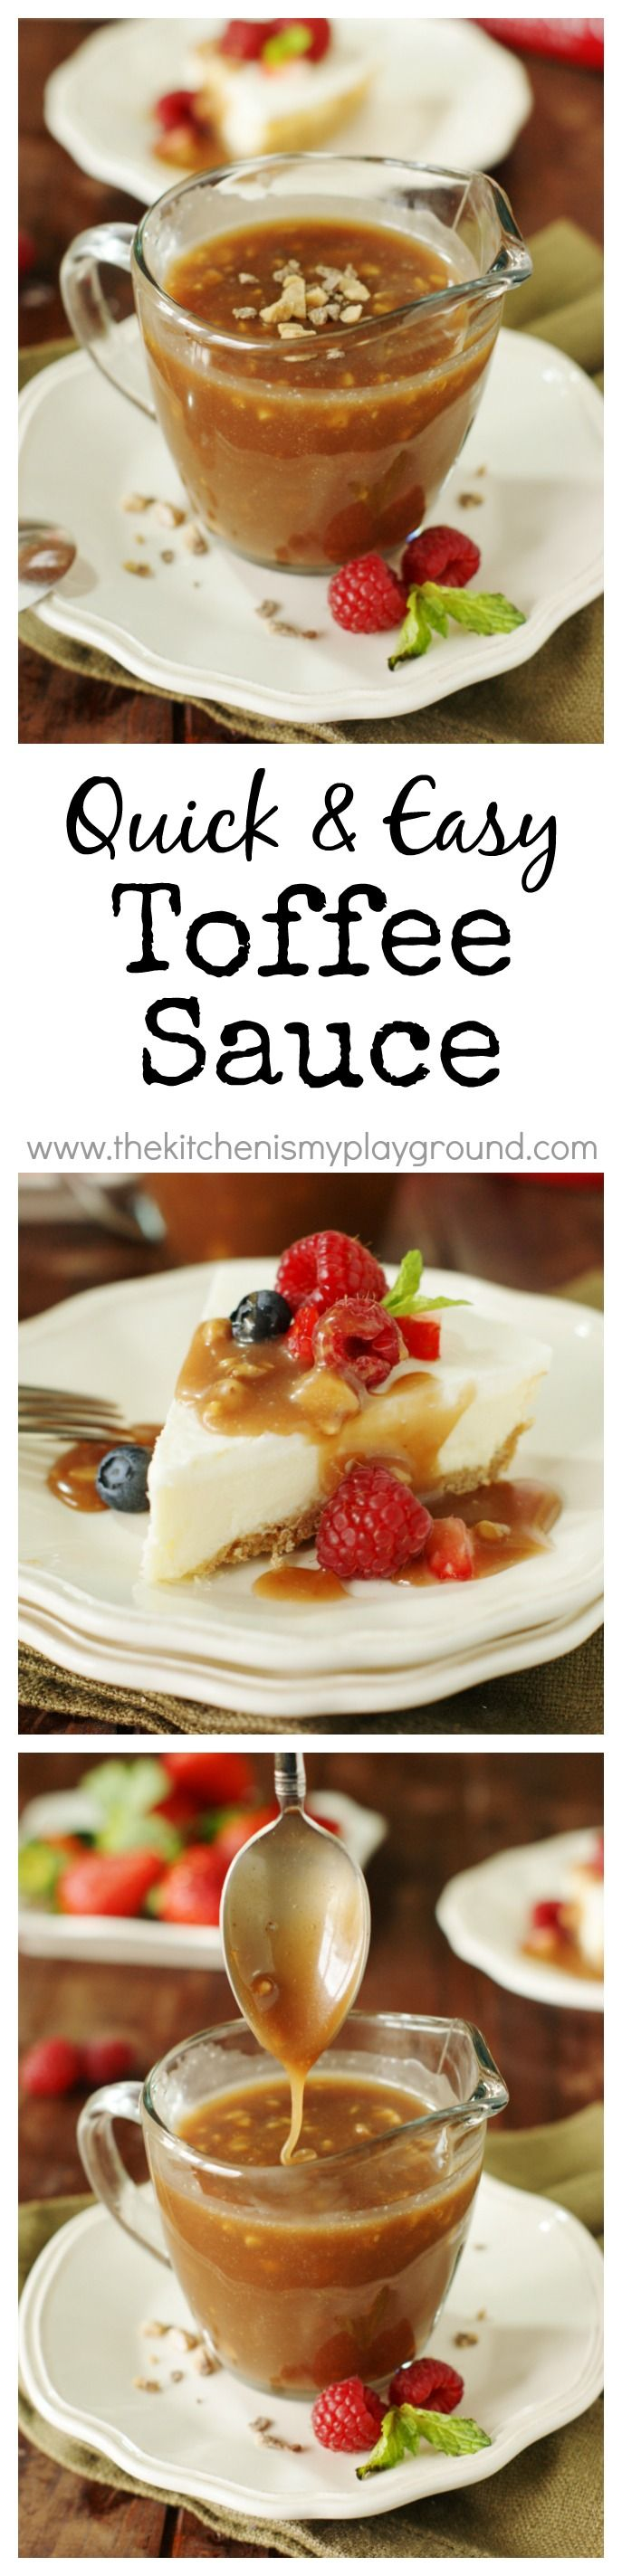 Quick & Easy Toffee Sauce ~ PERFECT for drizzling on cheesecake, ice cream, berries ... and more! www.thekitchenismyplayground.com